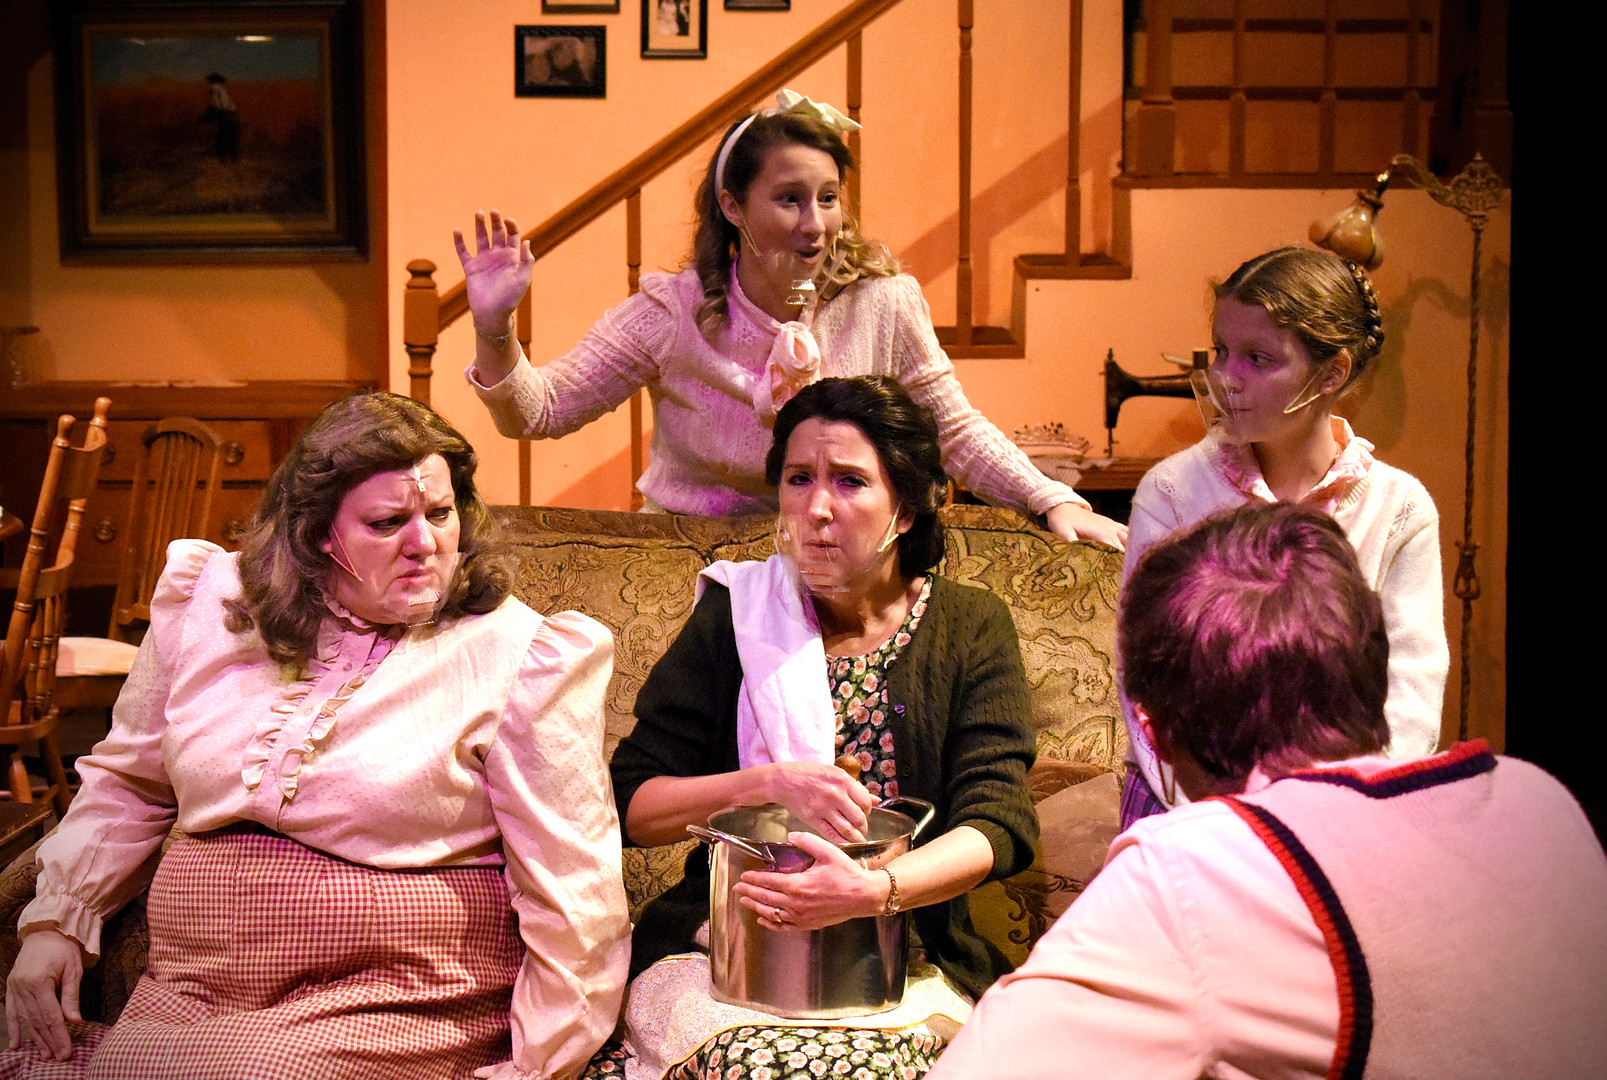 """Brighton Beach Memoirs."" Community Theatre Leage, Williamsport, PA. 2020 Director: Jonathan Hetler Costume Design: William A Young (Left to Right) Samantha Storm as Blanche, Marie Fox as Kate ) on sofa), Sloan Wood as Nora (behind sofa), Adam Fox as Eugene, Hannah Bastian as Laurie"